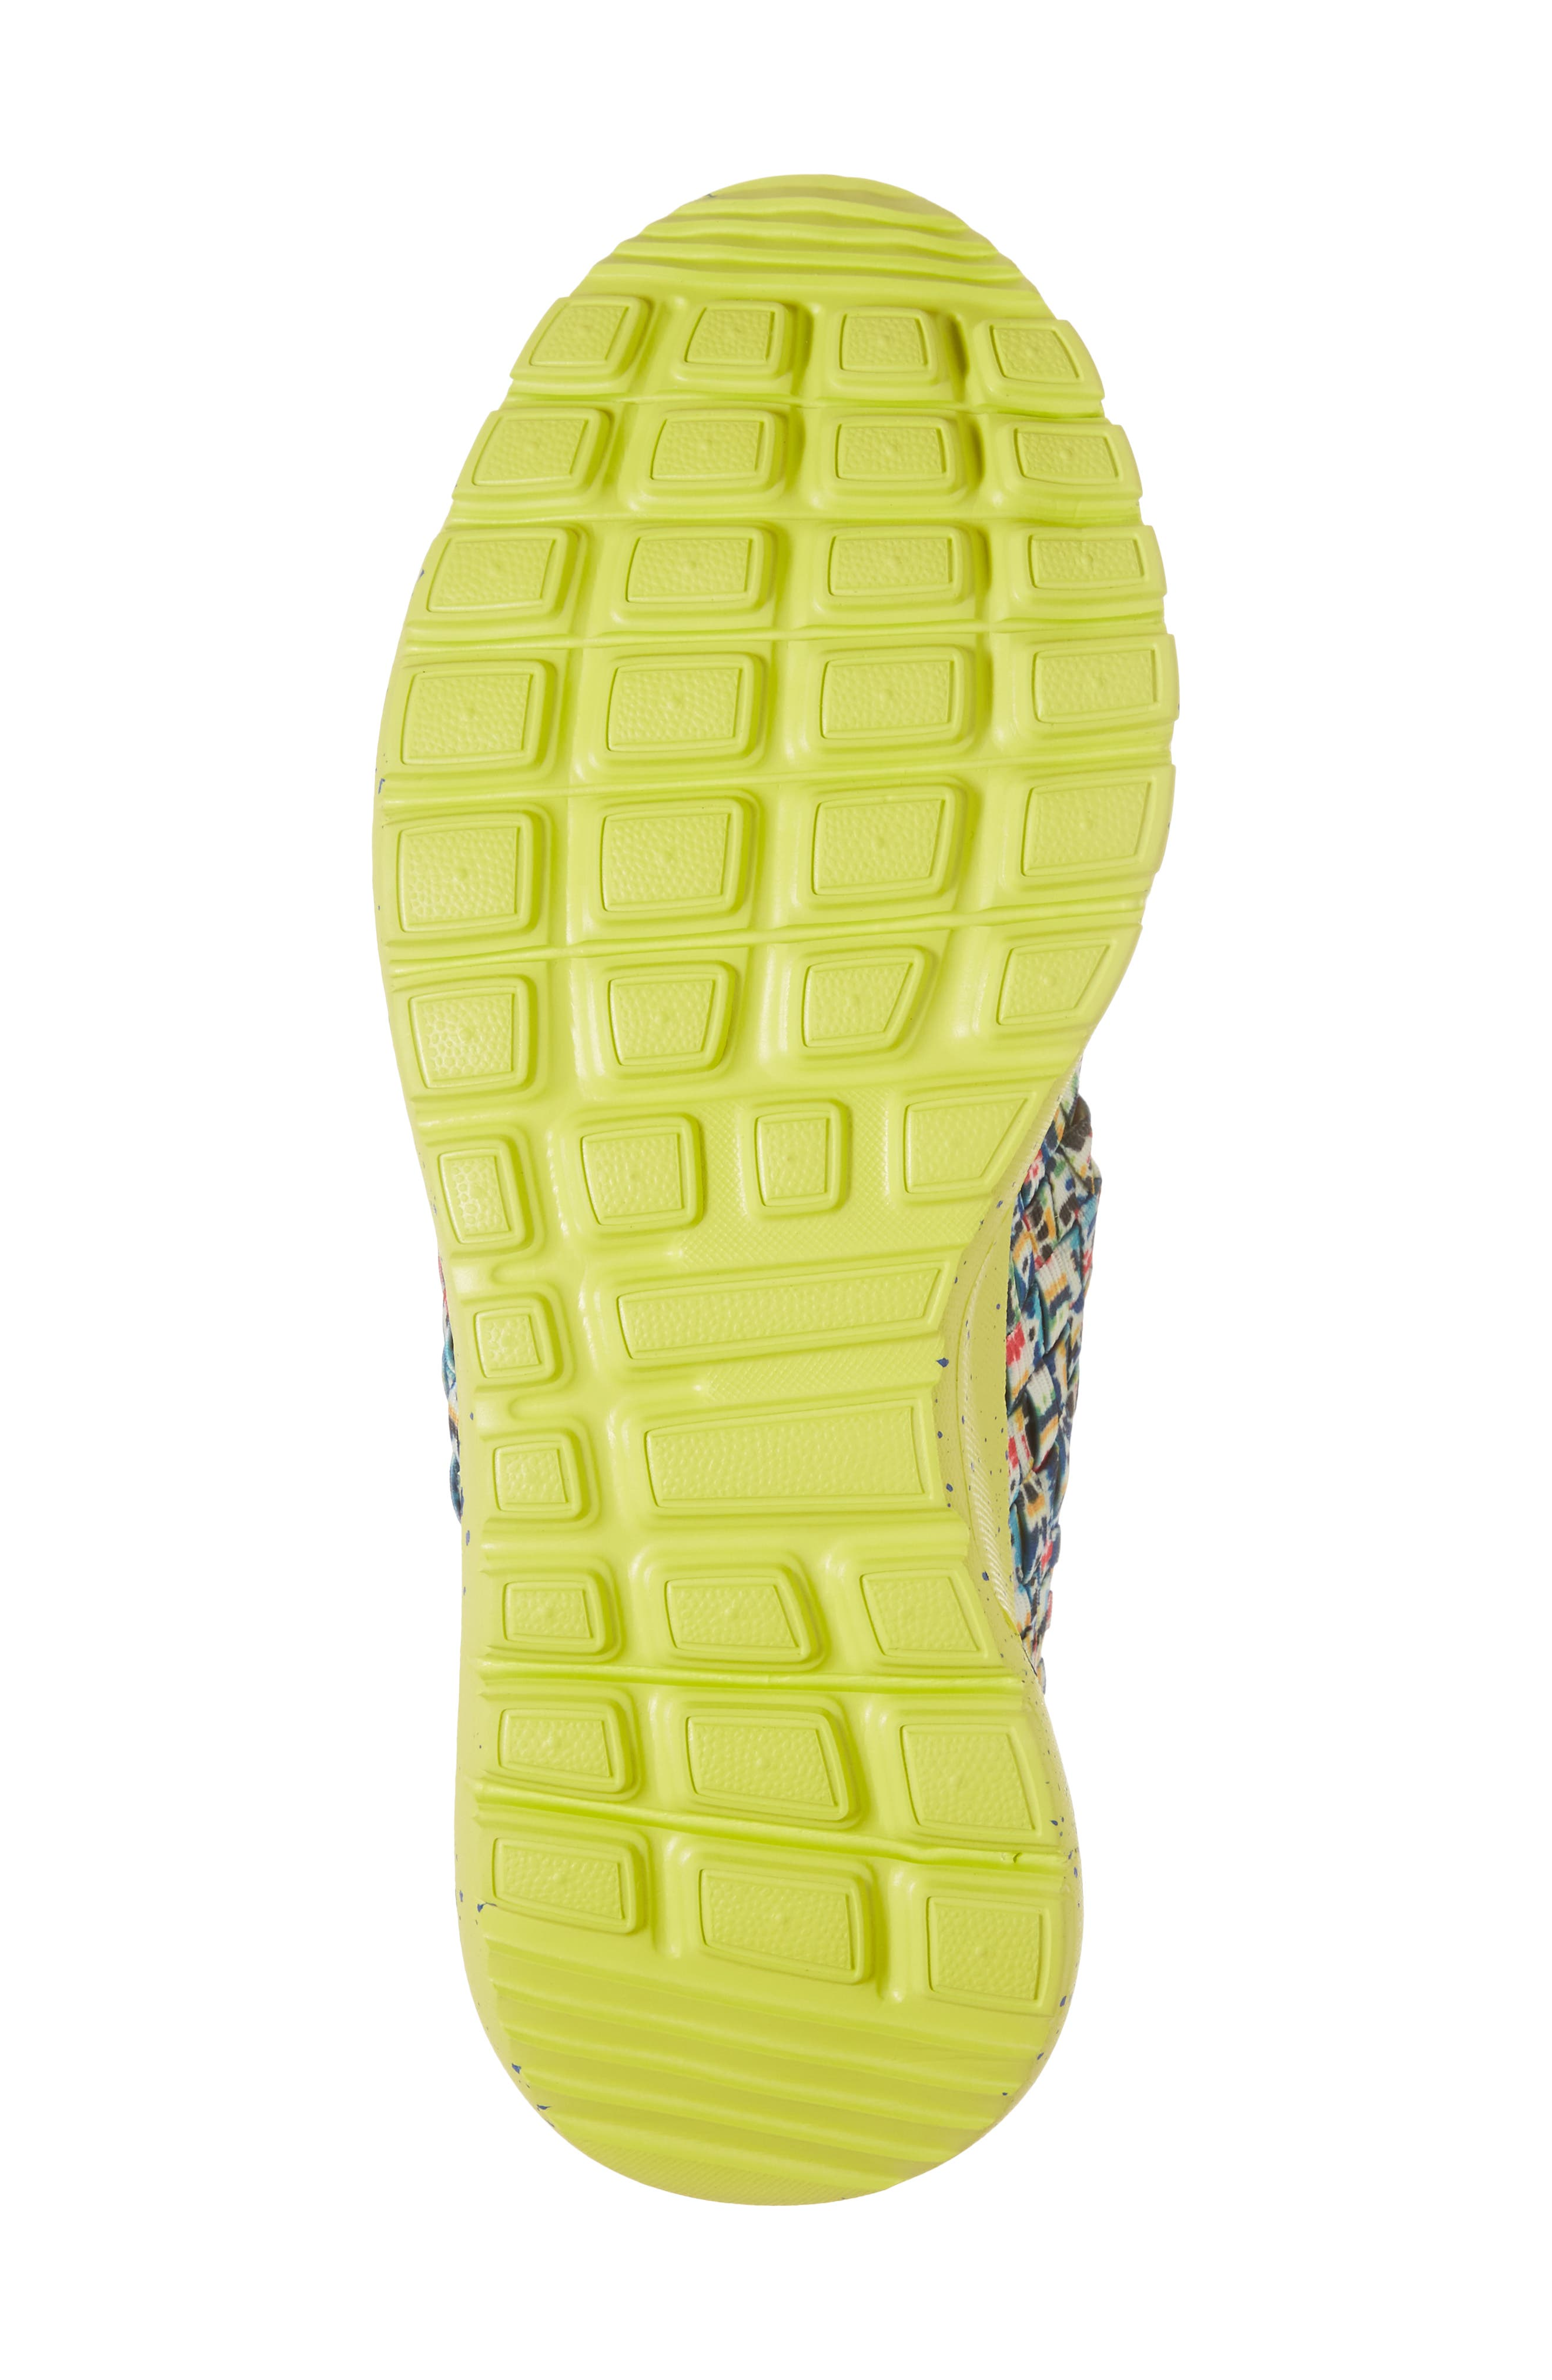 Runners Victoria Sneaker,                             Alternate thumbnail 6, color,                             Pixel Fabric